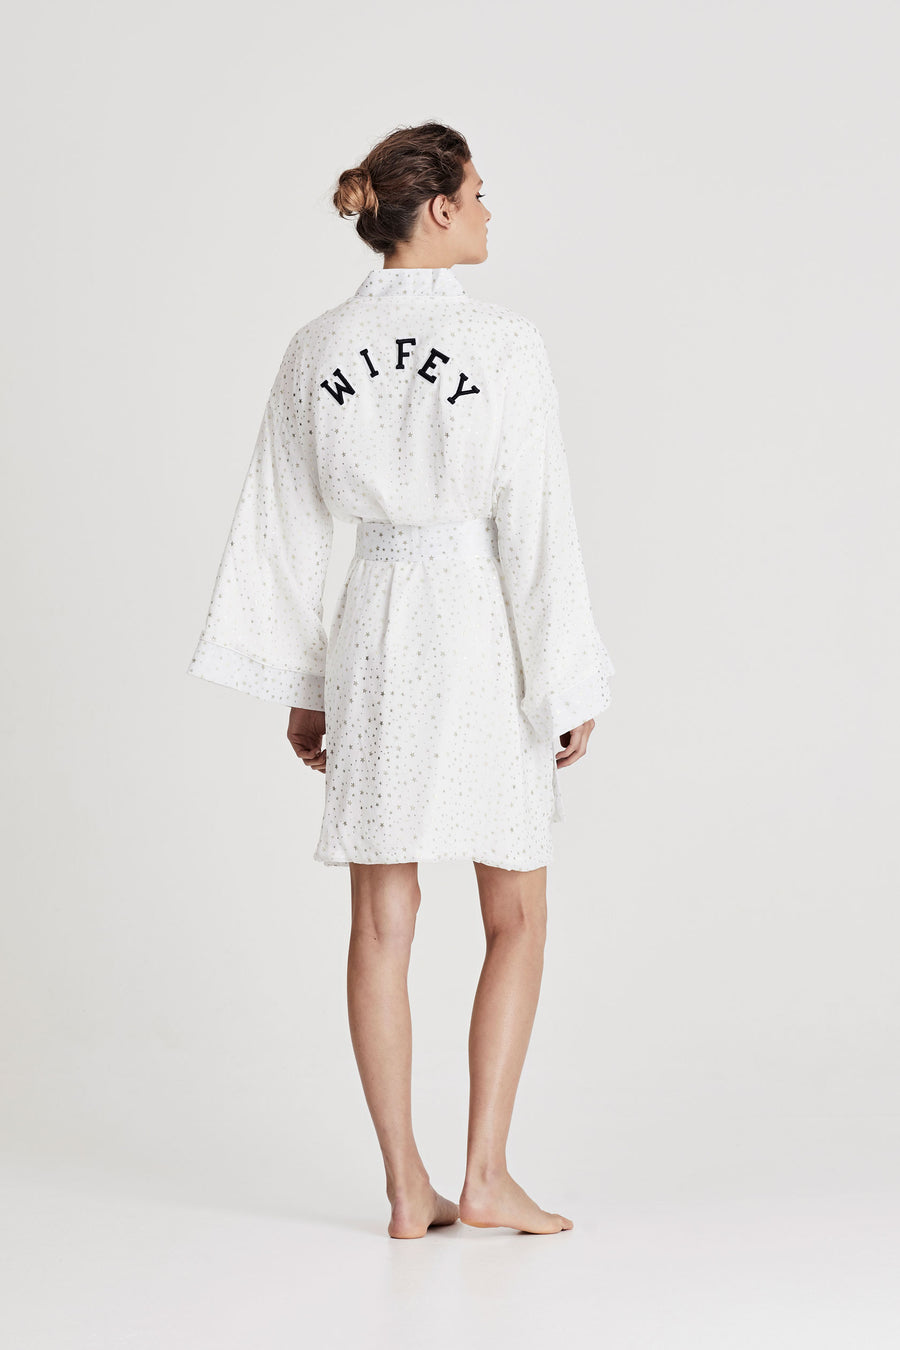 Wifey Robe by Chosen by One Day - The Beach Bride by Chic Parisien, a destination for beach weddings, bachelorettes and honeymoons